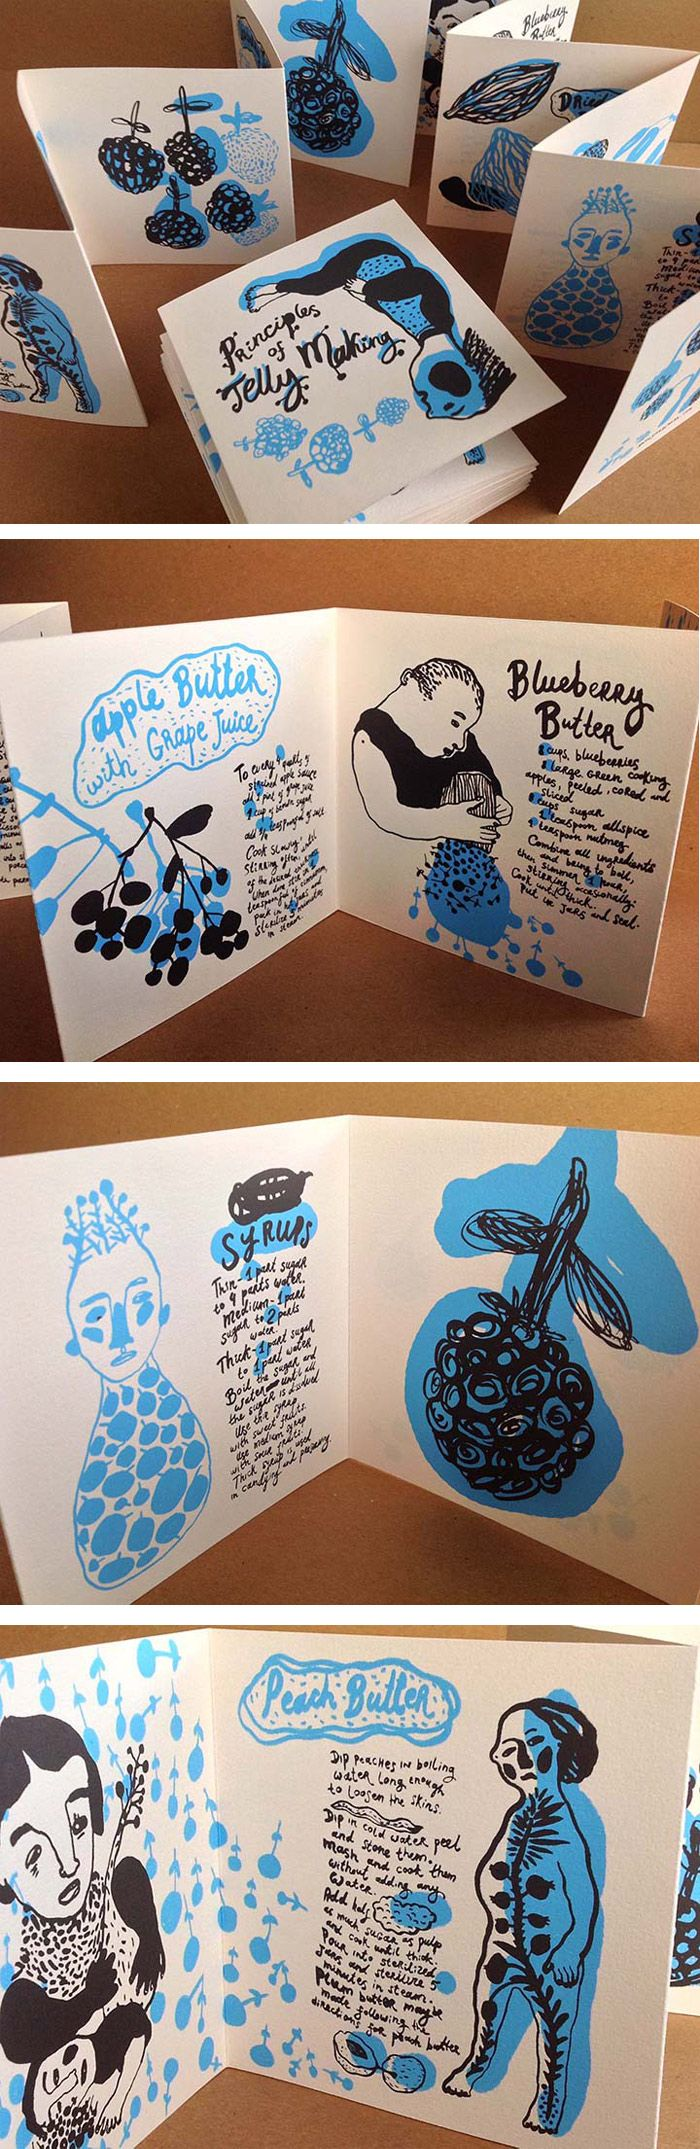 Ilustración y edicion de fanzines. Natalya Balnova / Silk screened book design - Principles of Jelly Making. http://www.designworklife.com/2014/04/17/alliteration-inspiration-jelly-journeying/